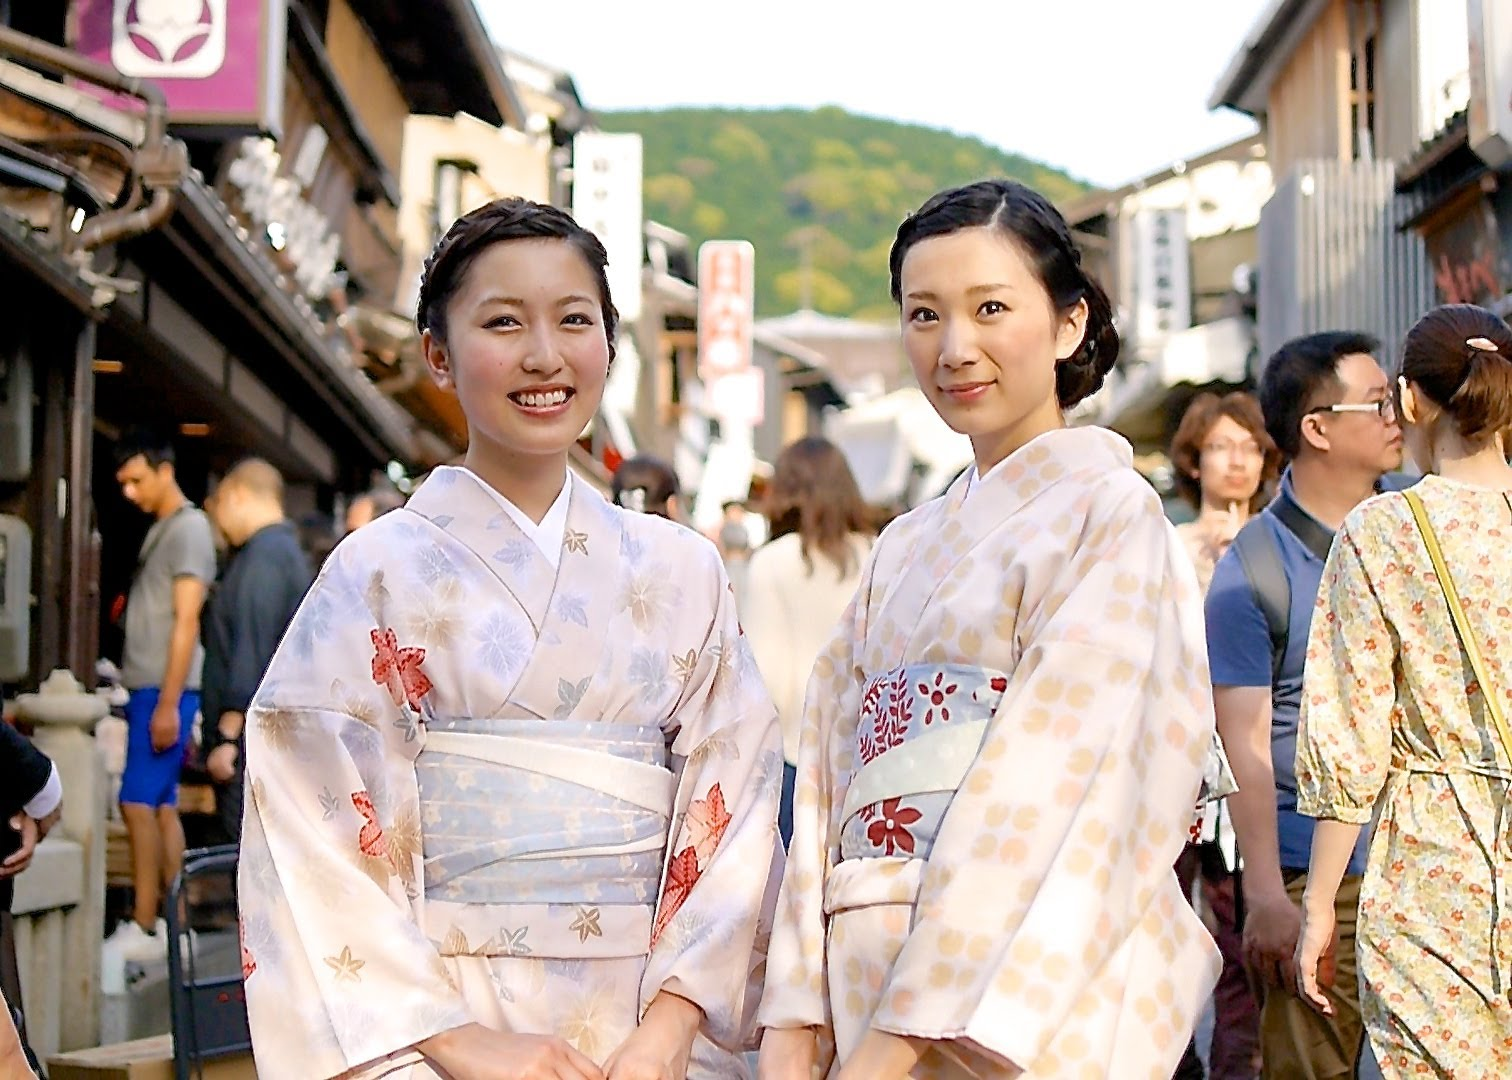 Moments in Kyoto – Tourism | Endless Stream of Travelers